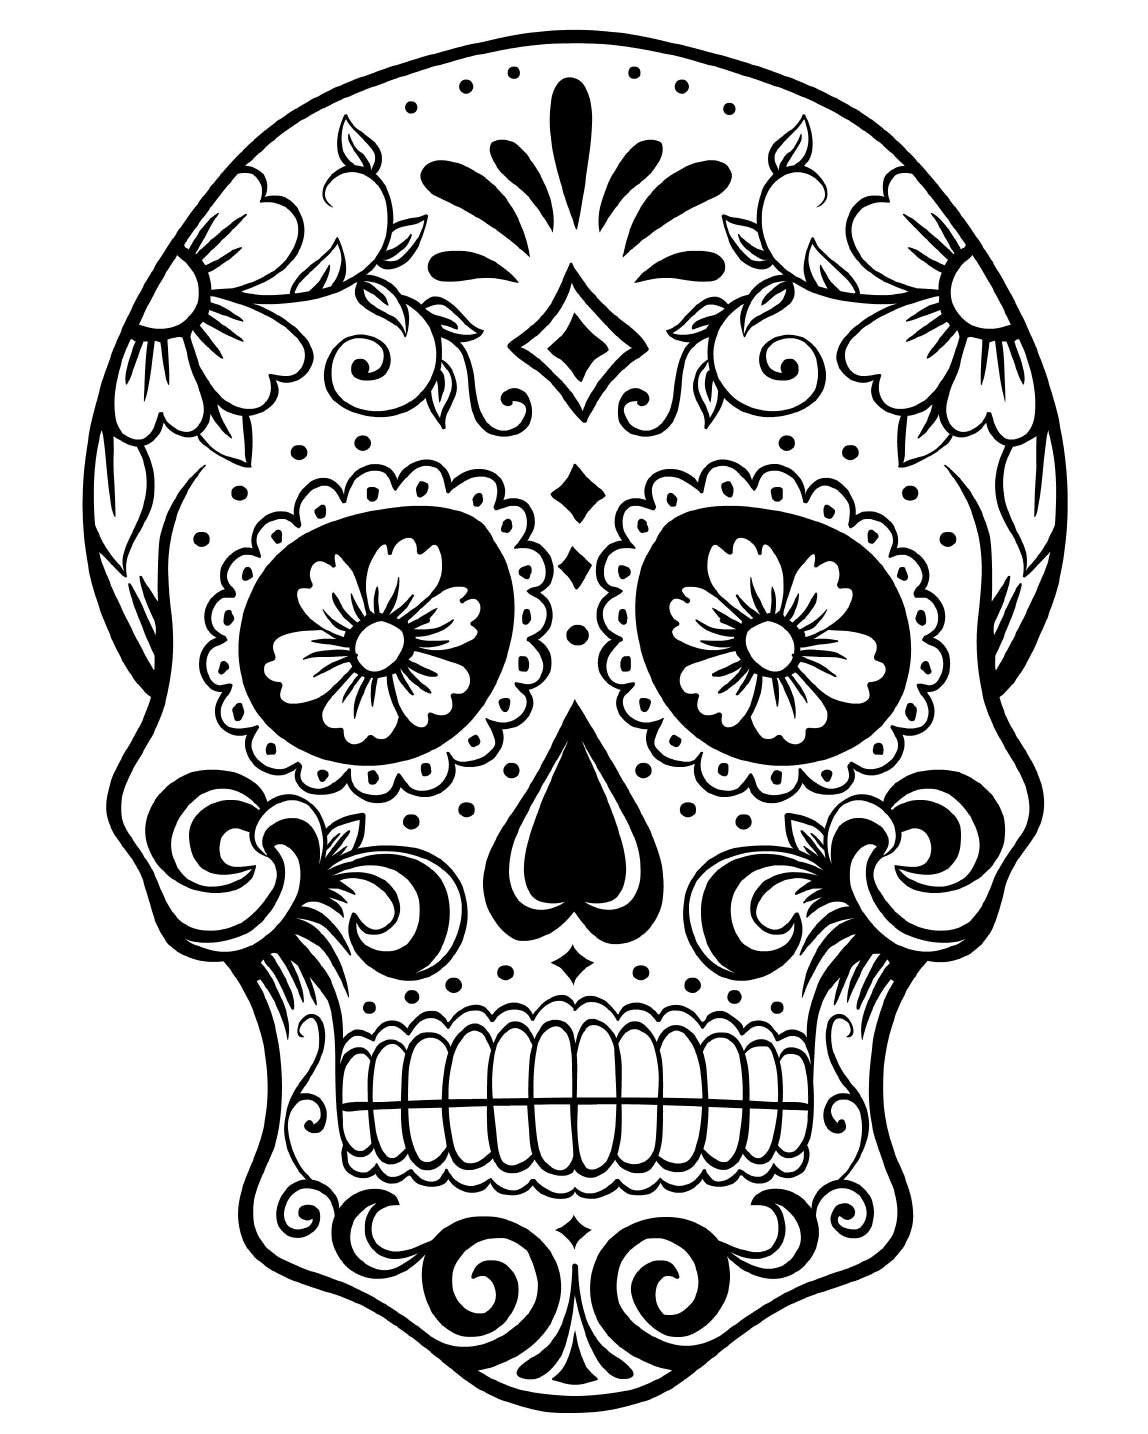 Adult Coloring Pages: Skulls 2-2 | Coloring crafts | Pinterest ...